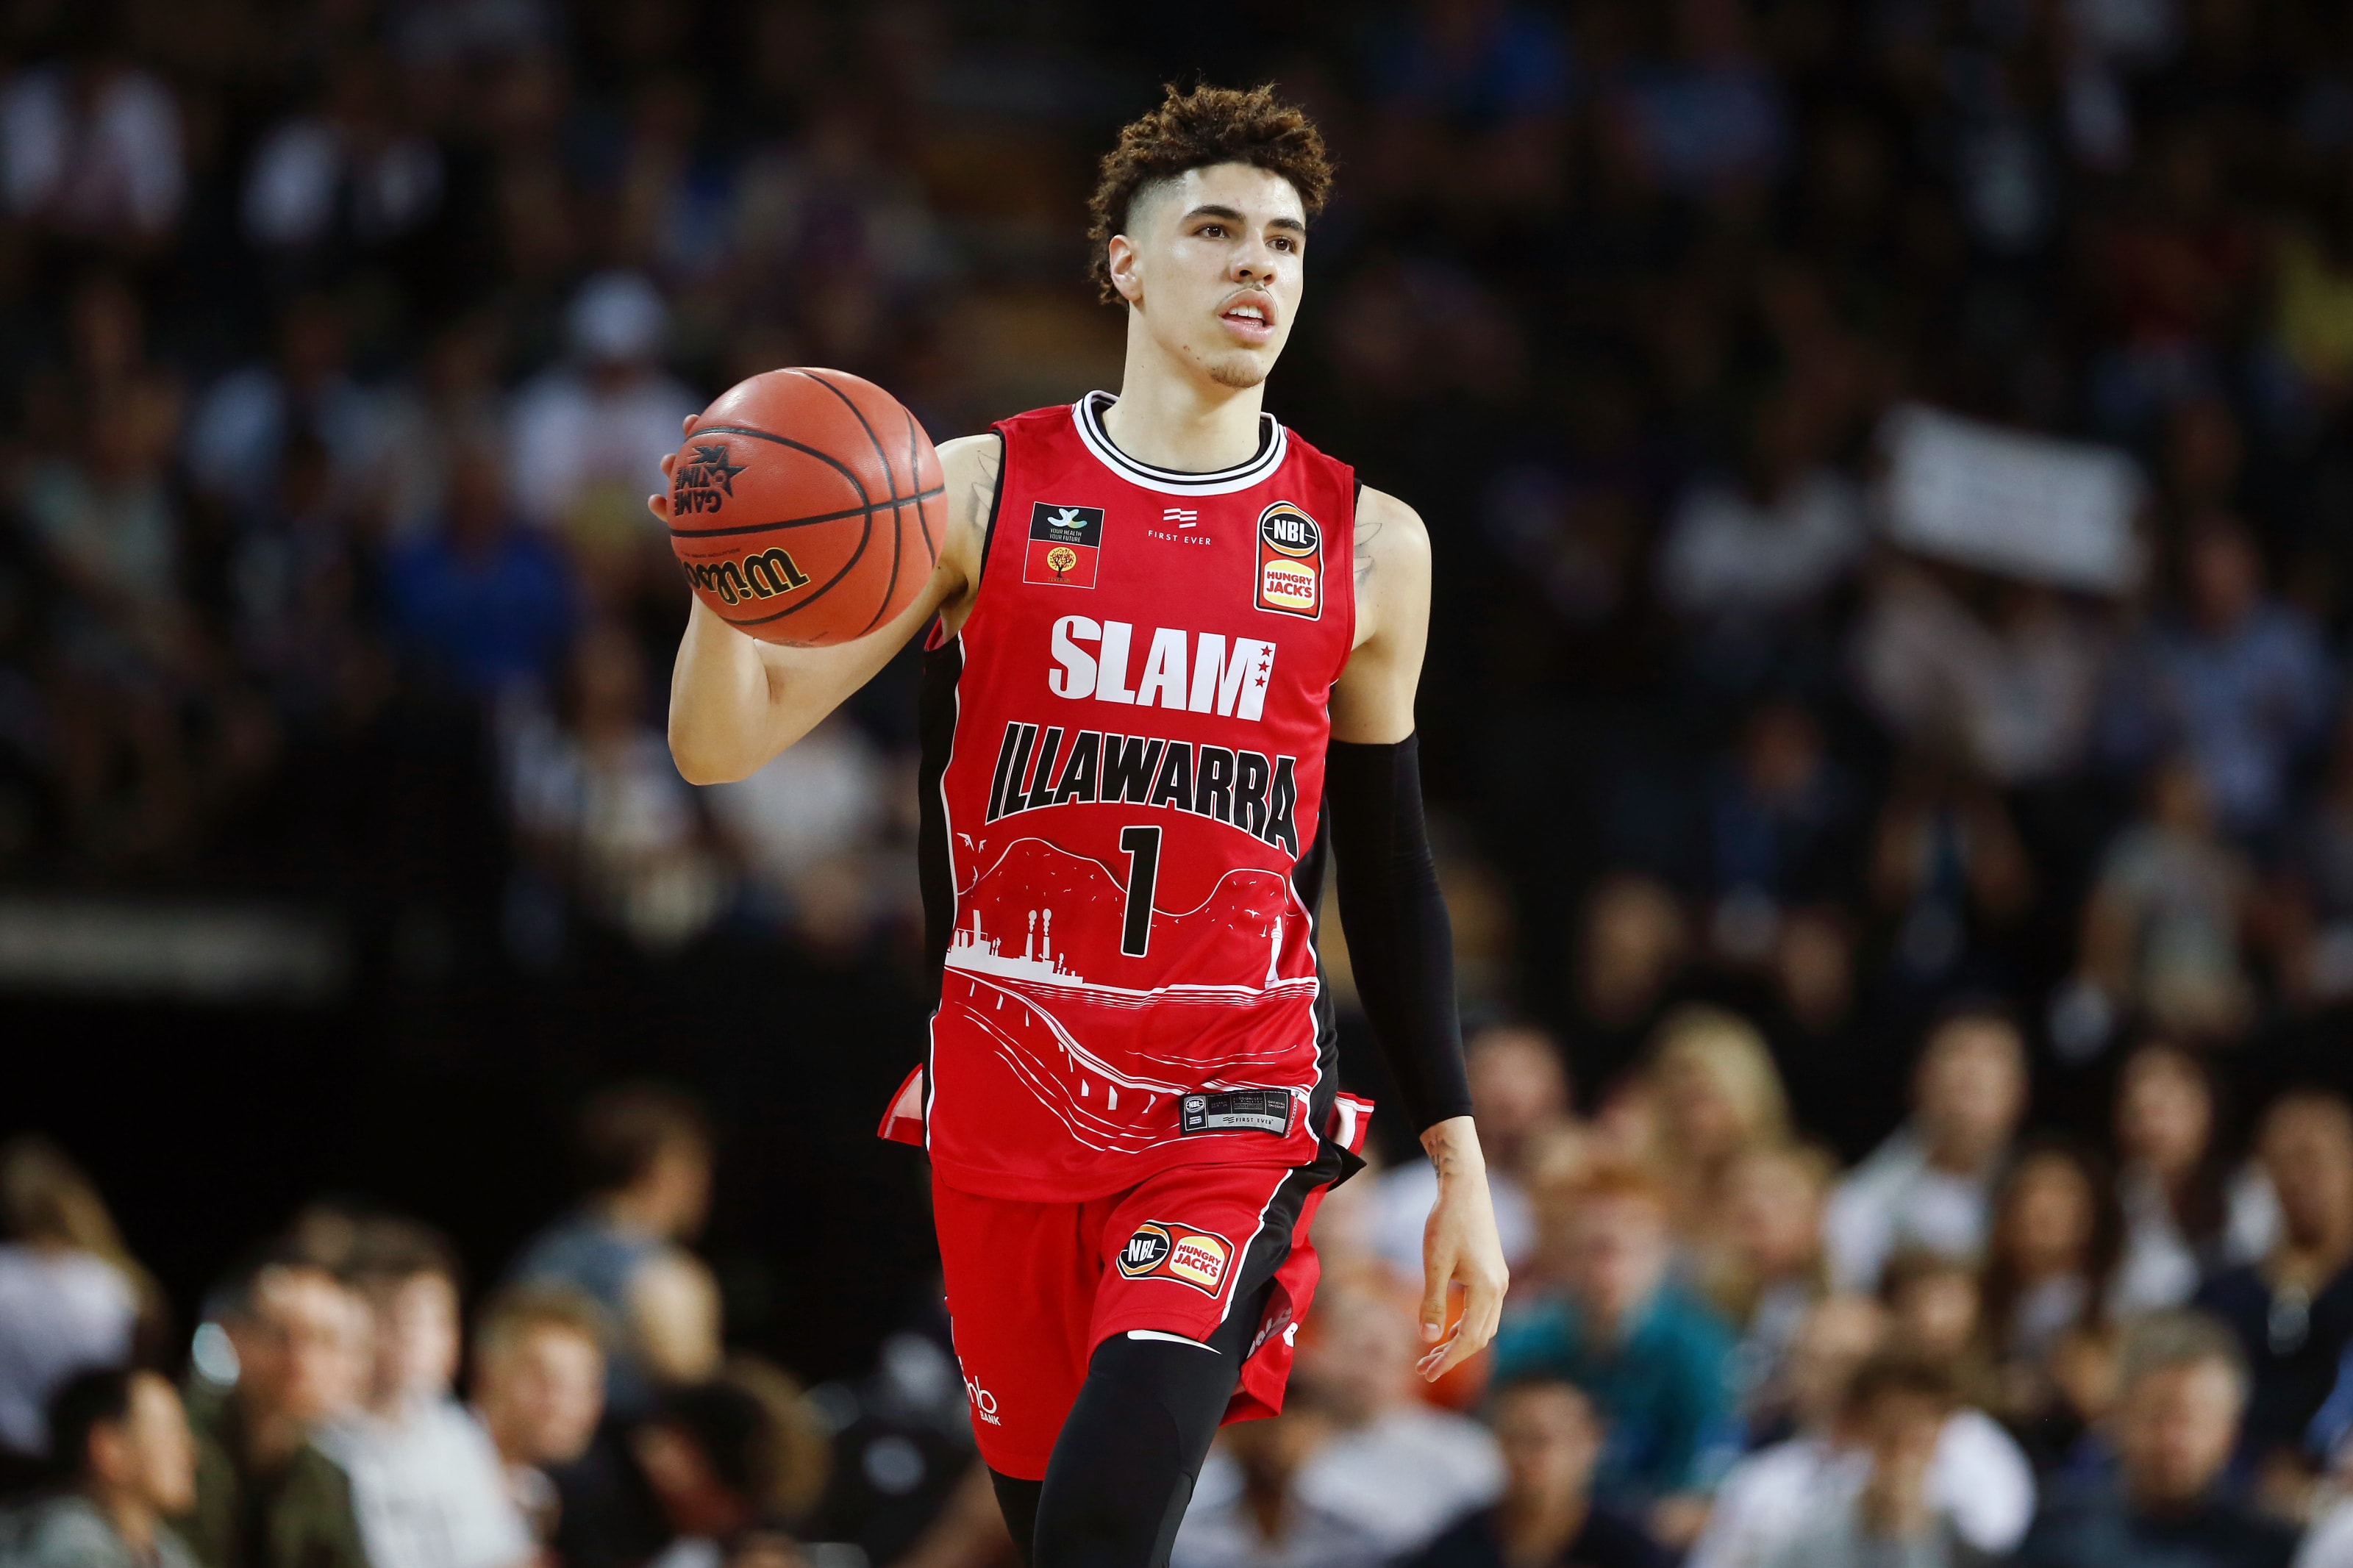 2020 Nba Draft Profile International Prospect Lamelo Ball Three years ago, lamelo ball's mother, tina, suffered a stroke. 2020 nba draft profile international